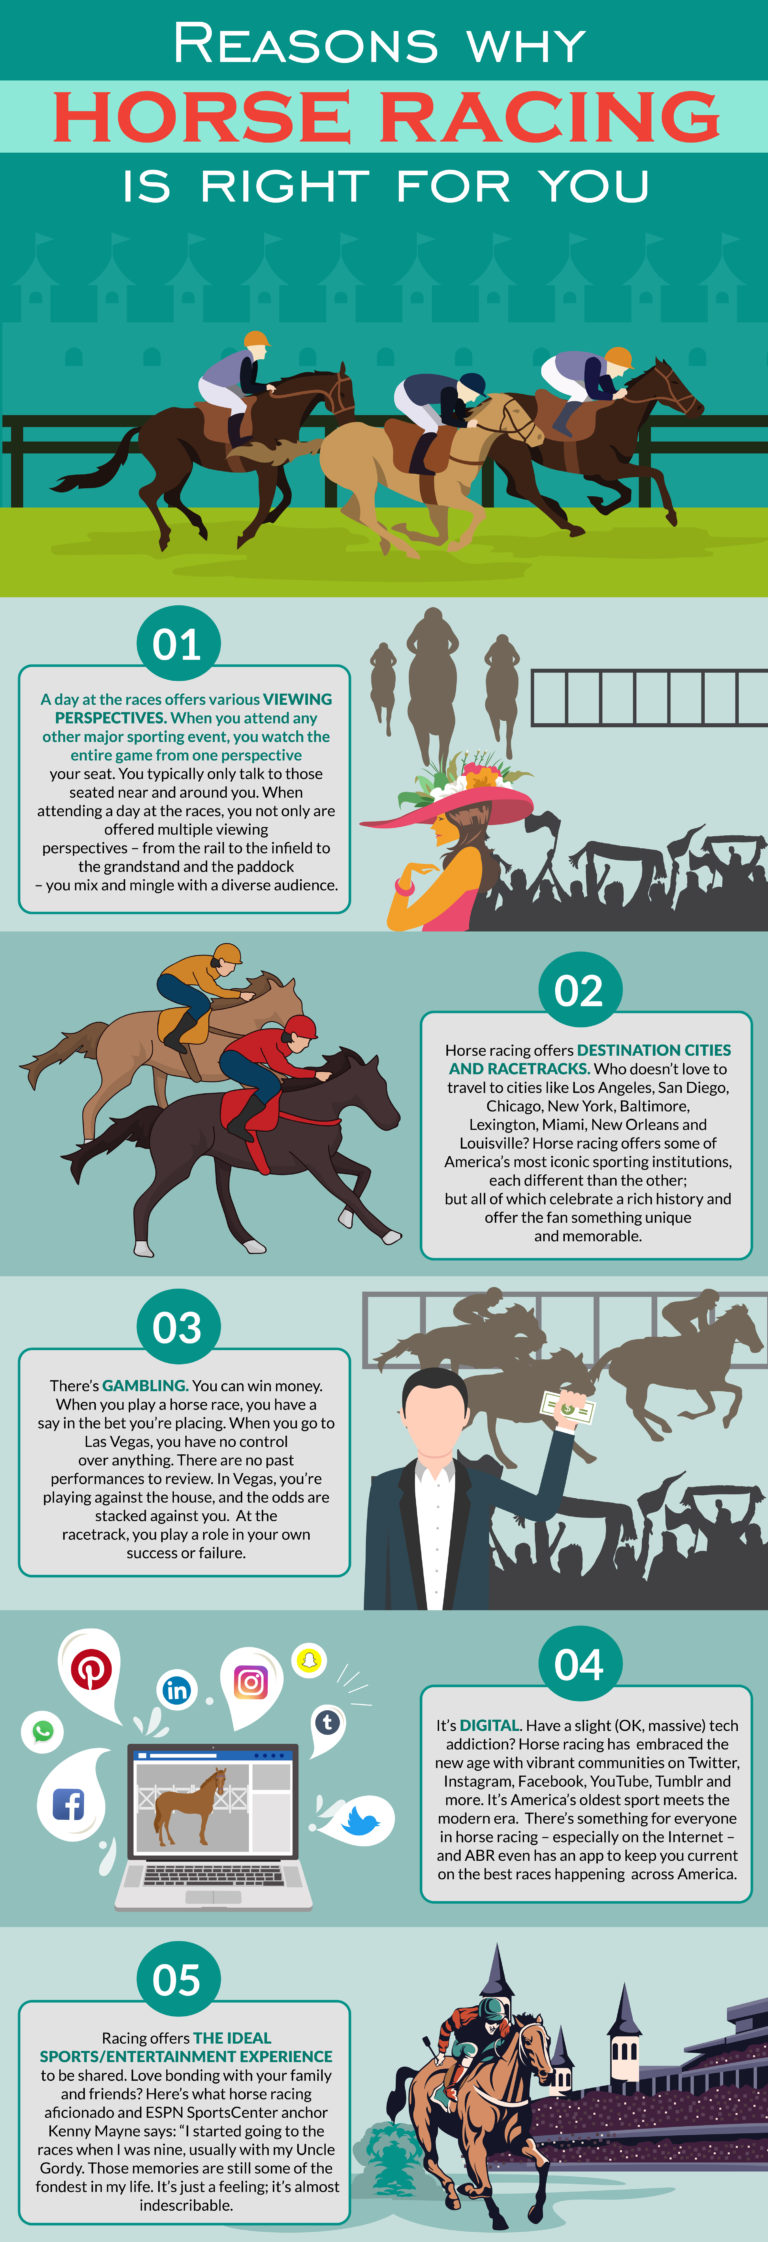 Reasons Why Horse Racing is Right for You